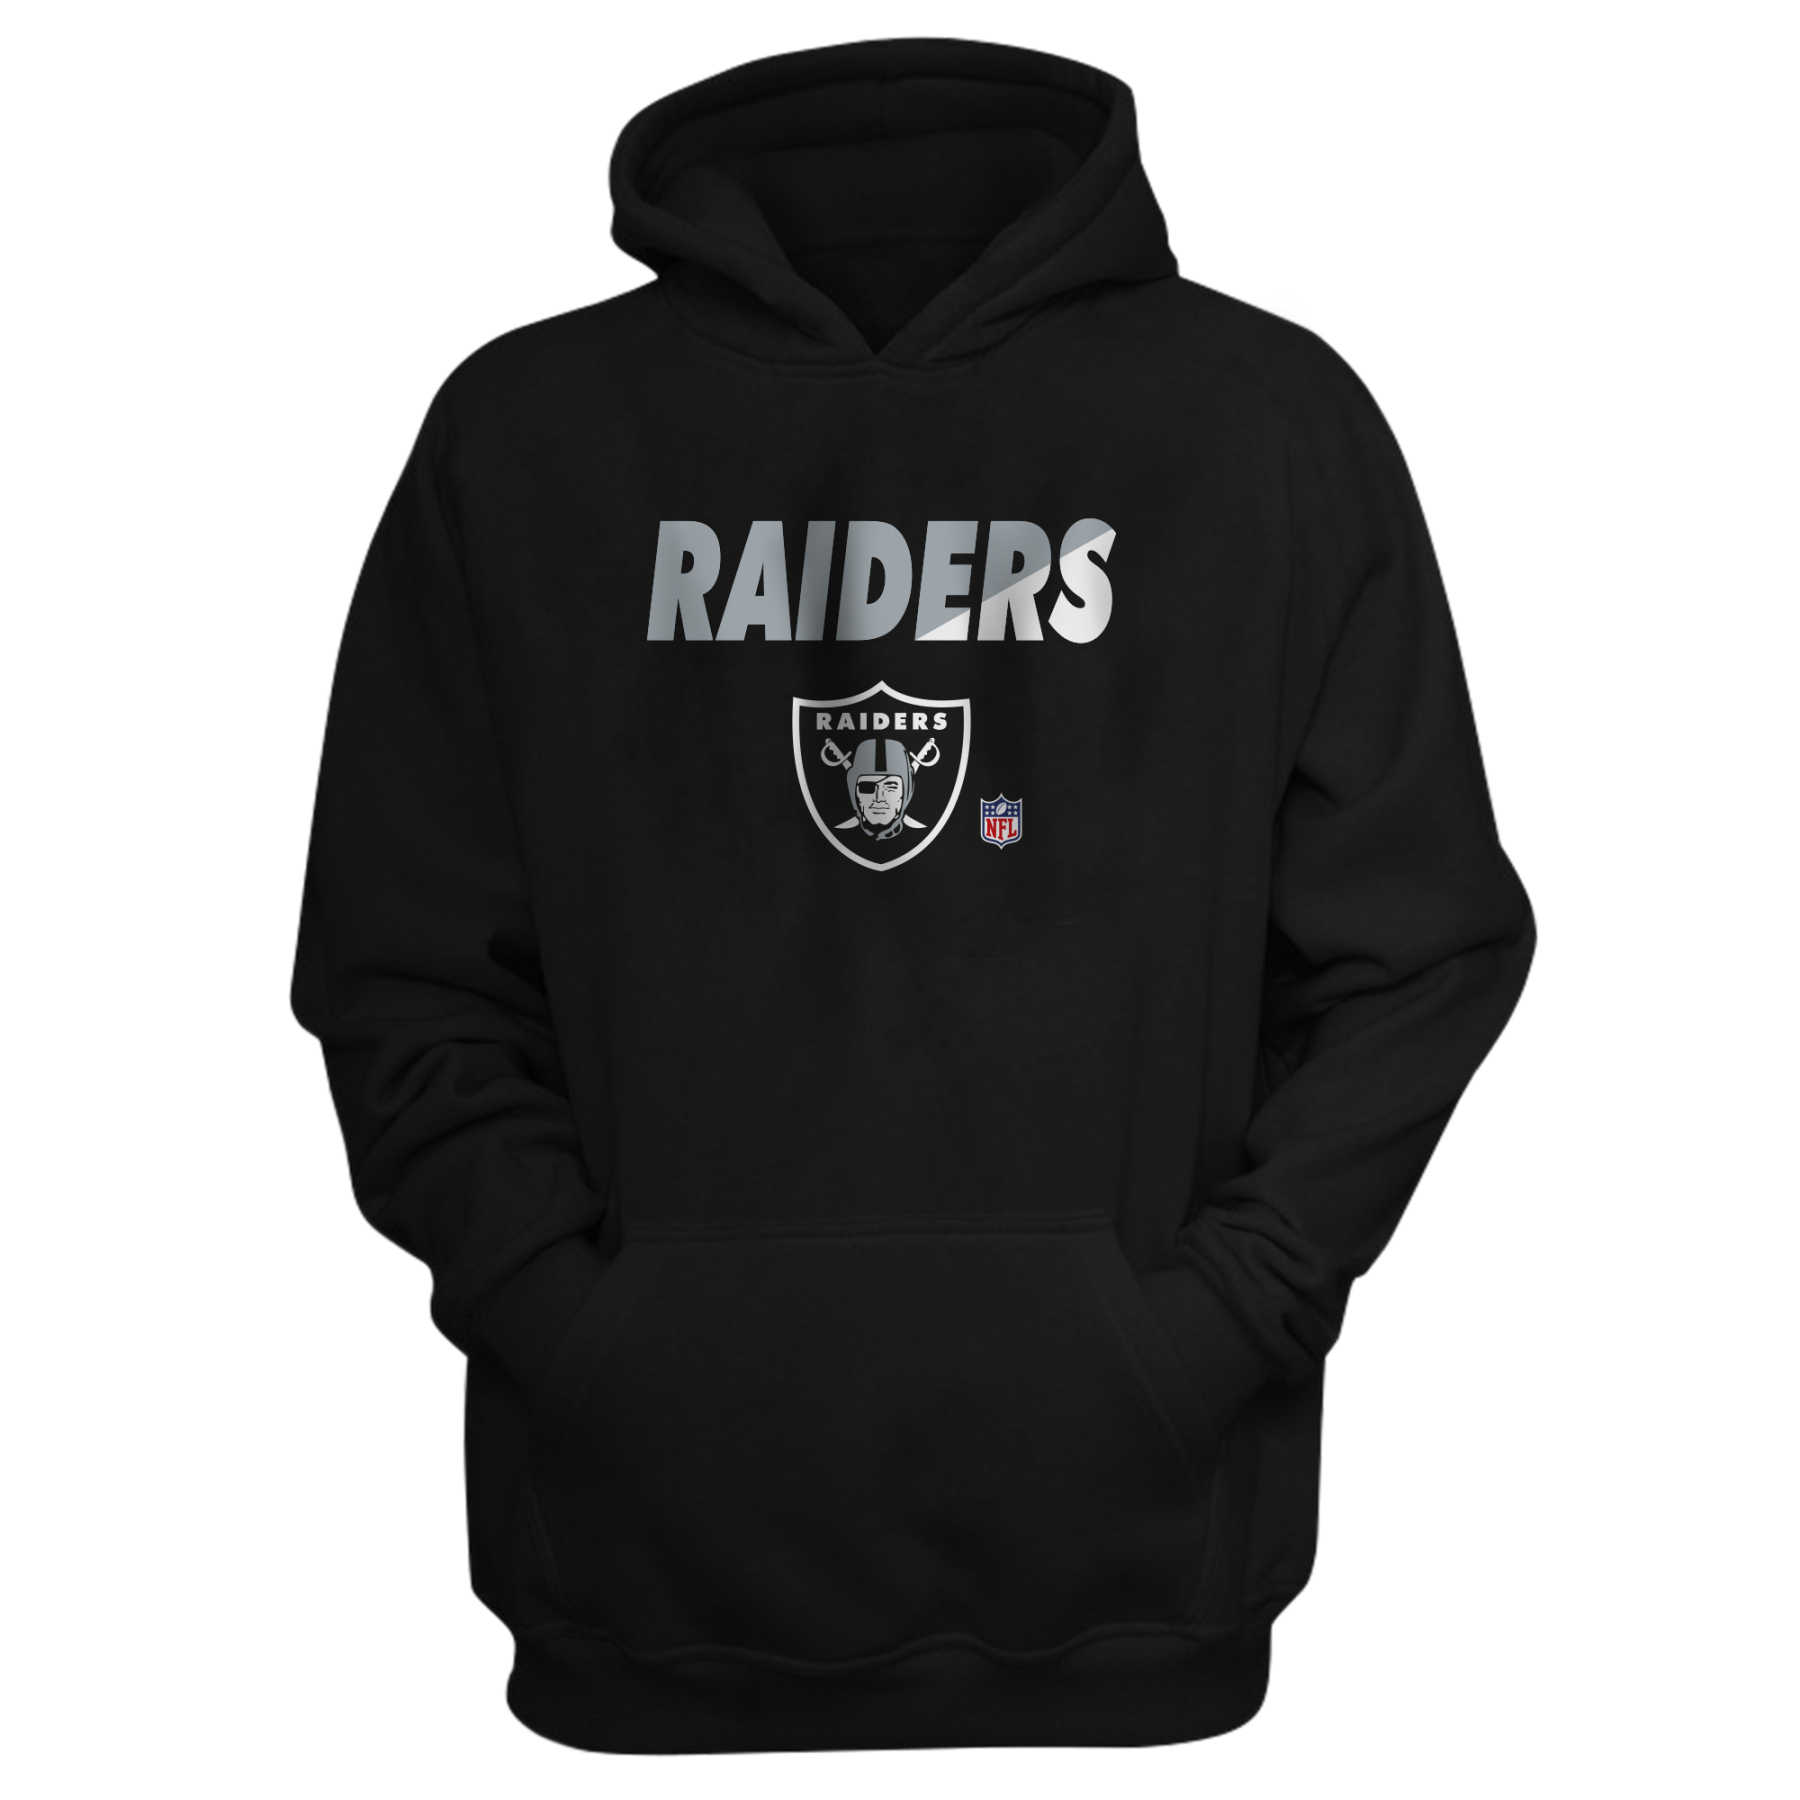 Oakland Raiders Moletom Com Capuz